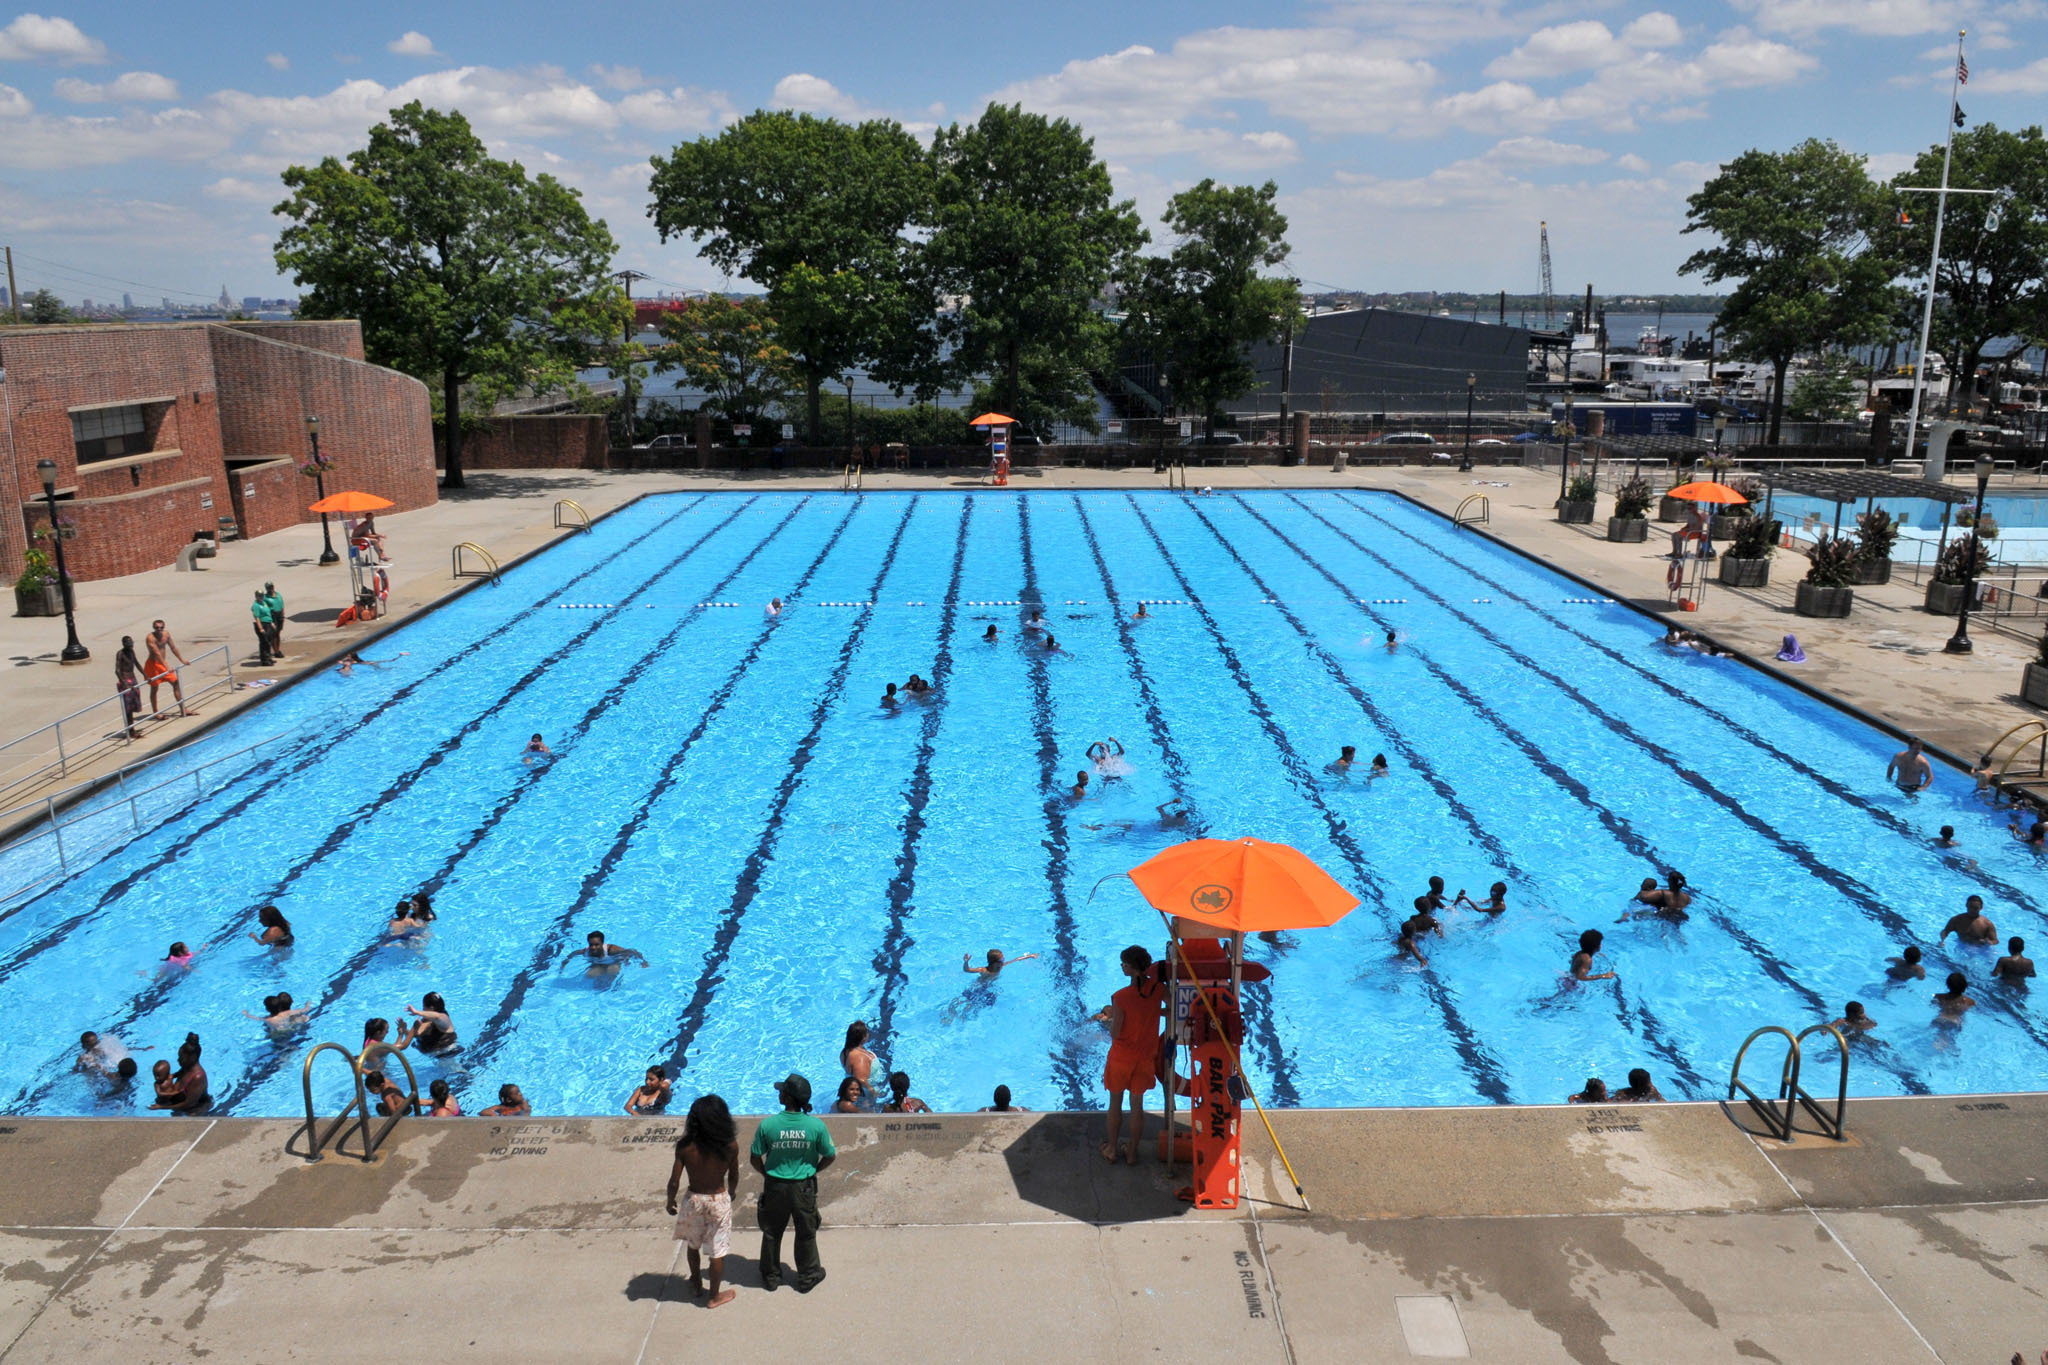 12 of the best public pools nyc has for swimming in summer for Public swimming pools around me